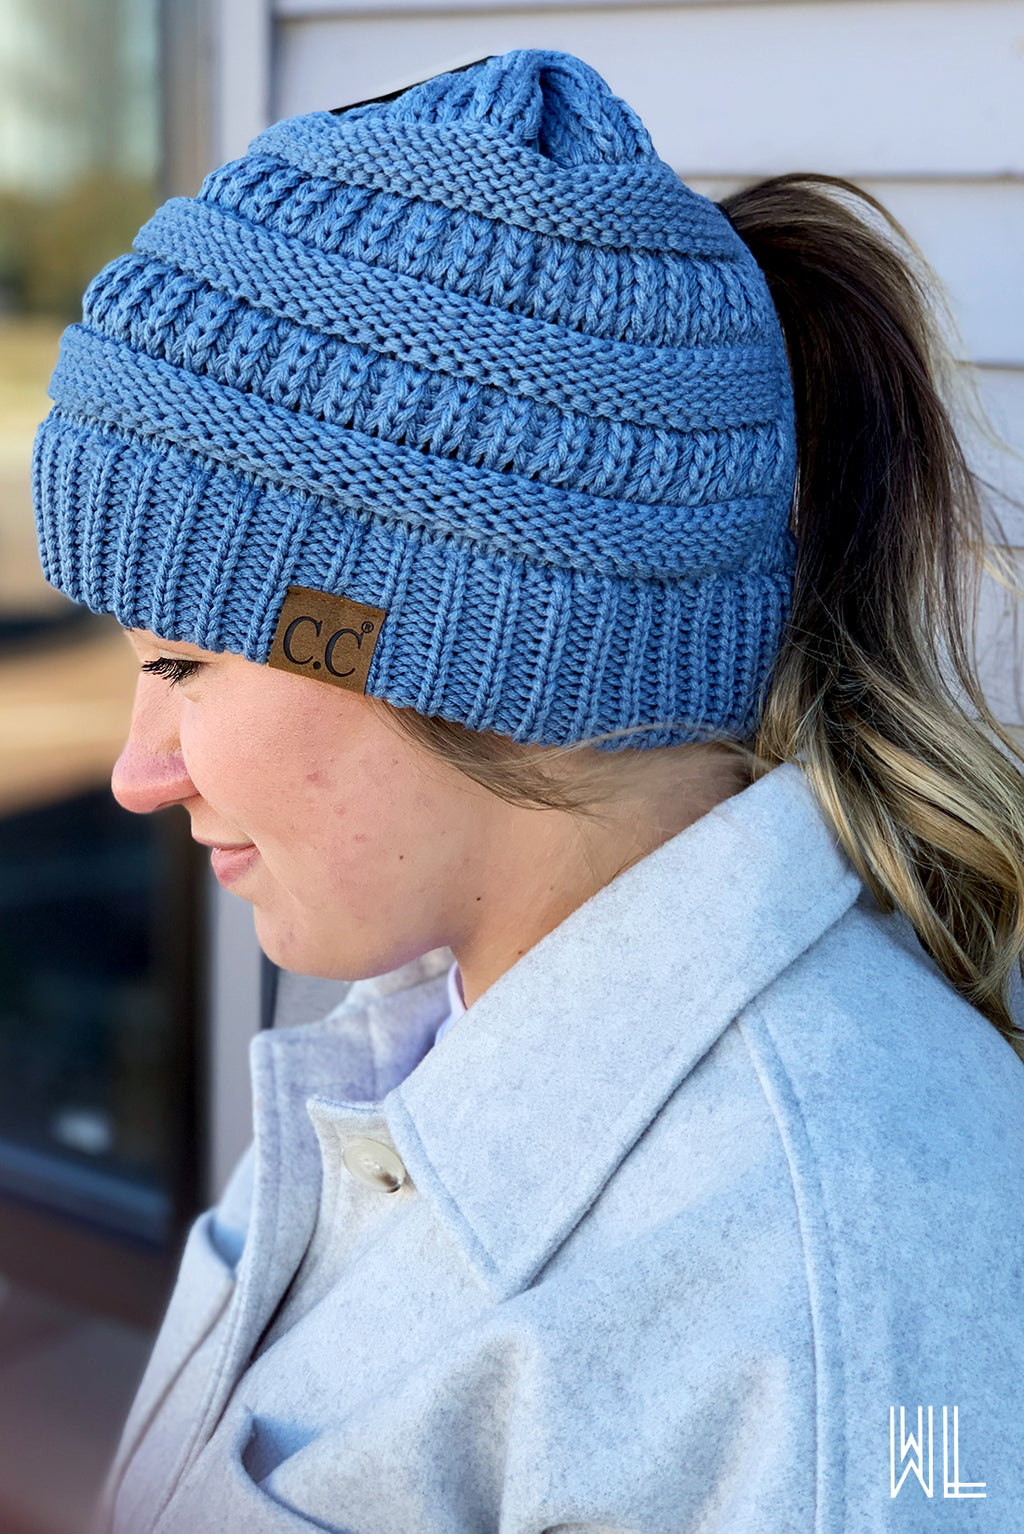 C.C. Criss Cross Pony Beanie